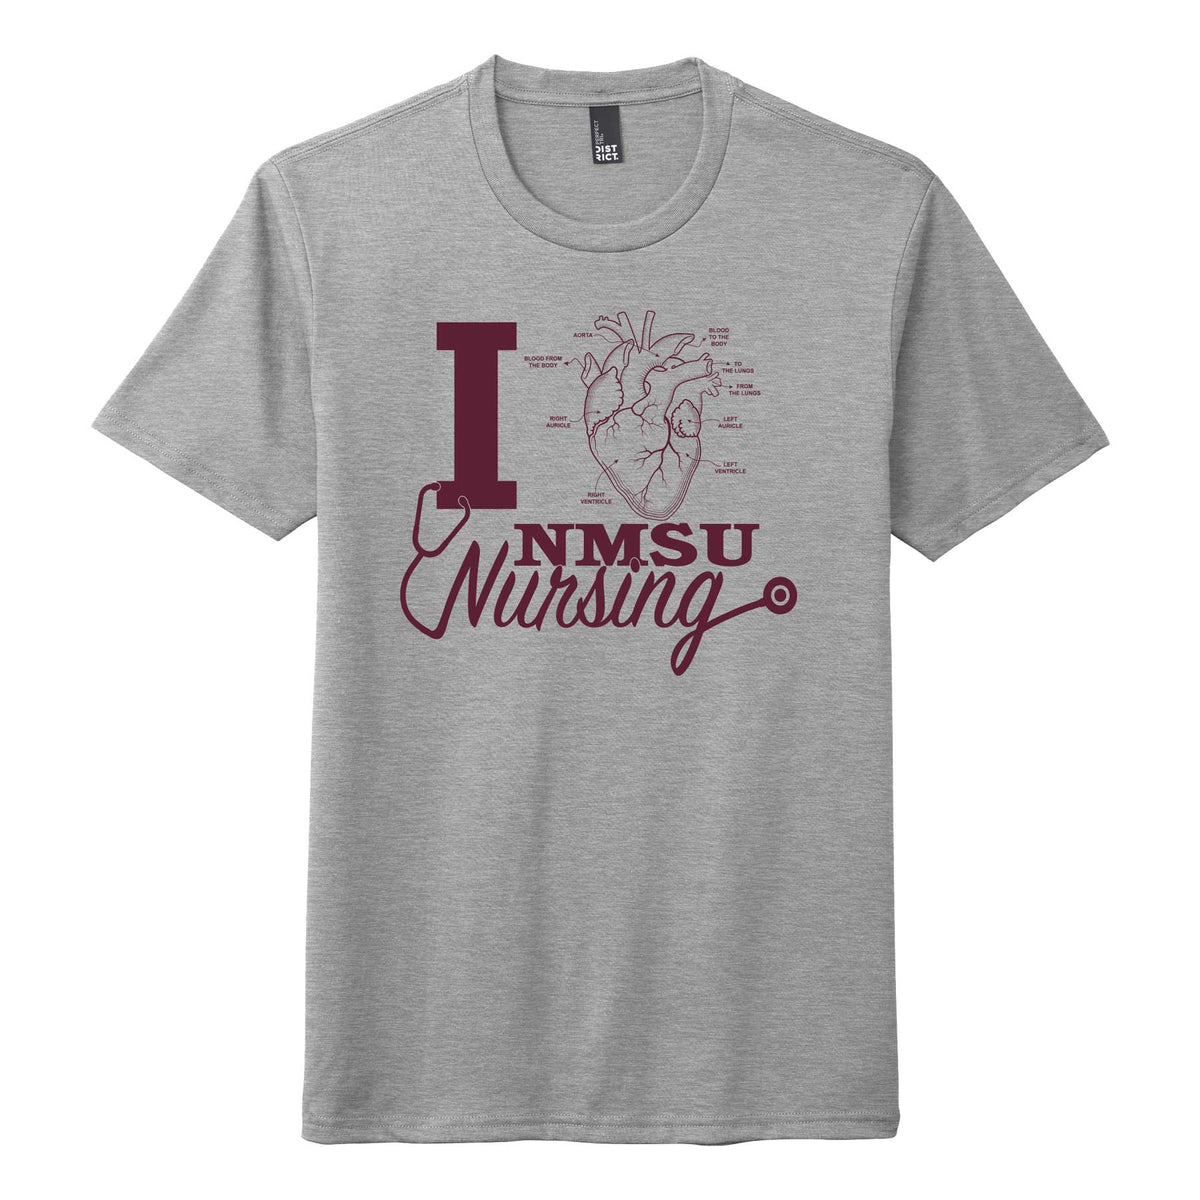 I Heart NMSU Nursing - Student Nurses Association Unisex T-Shirt